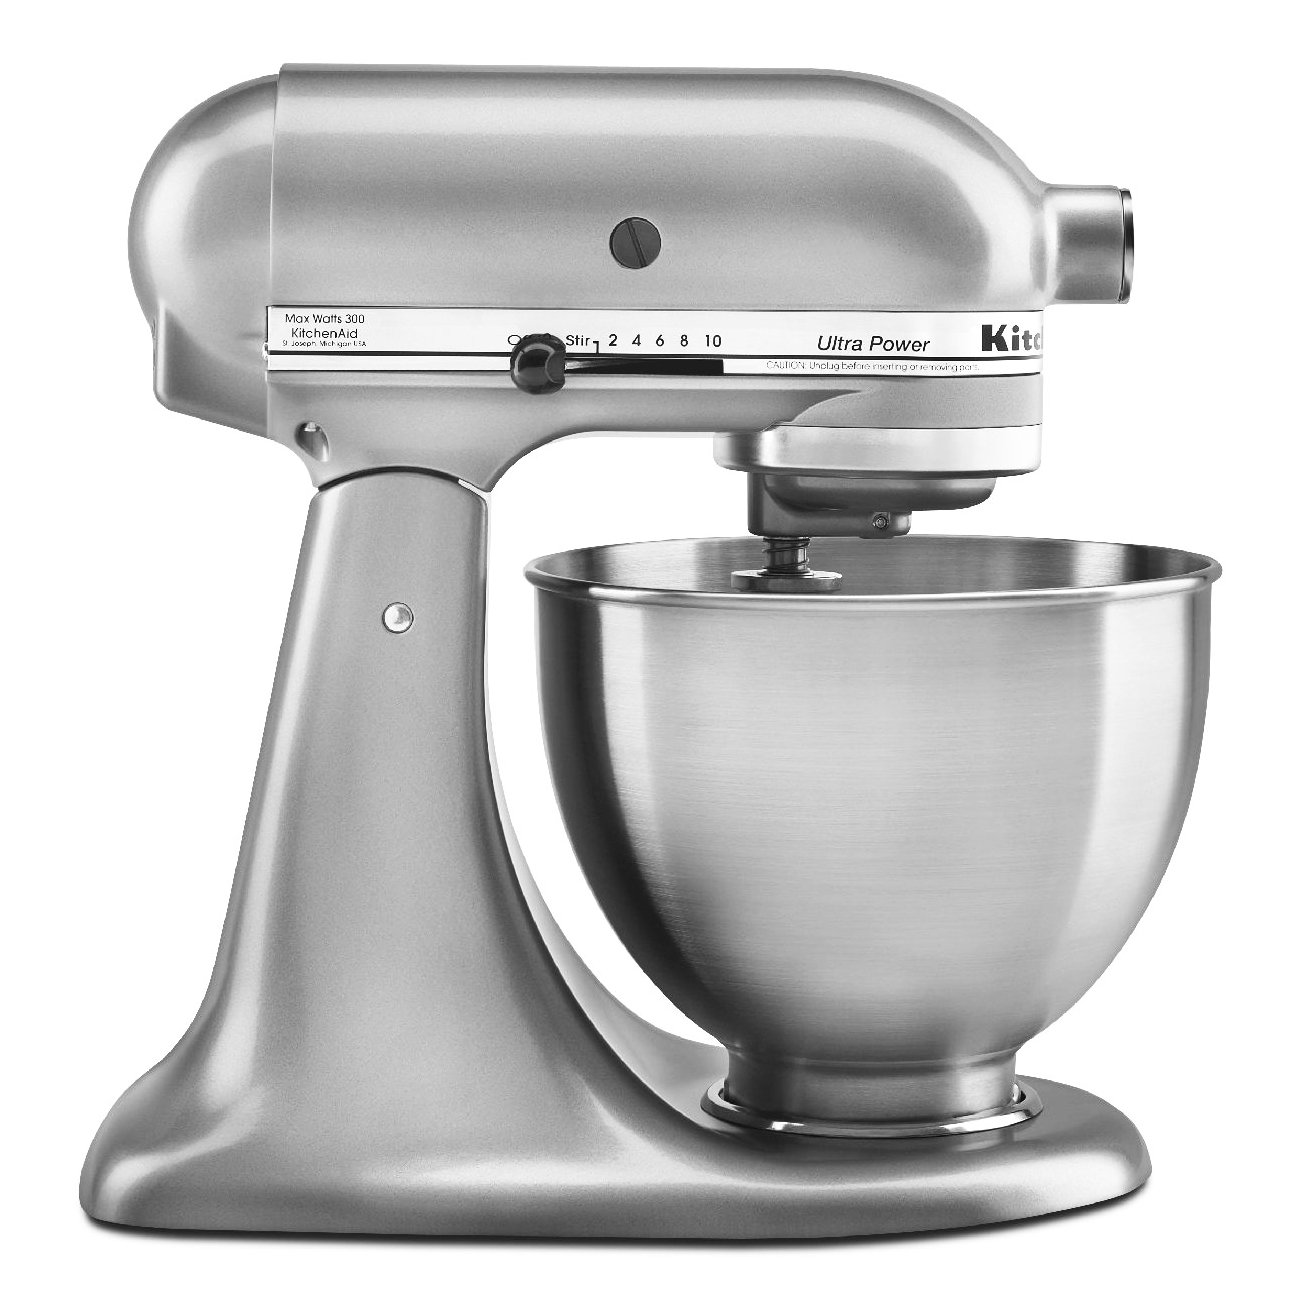 Kitchenaid 4.5 Quart Tilt Stand Mixer - Silver